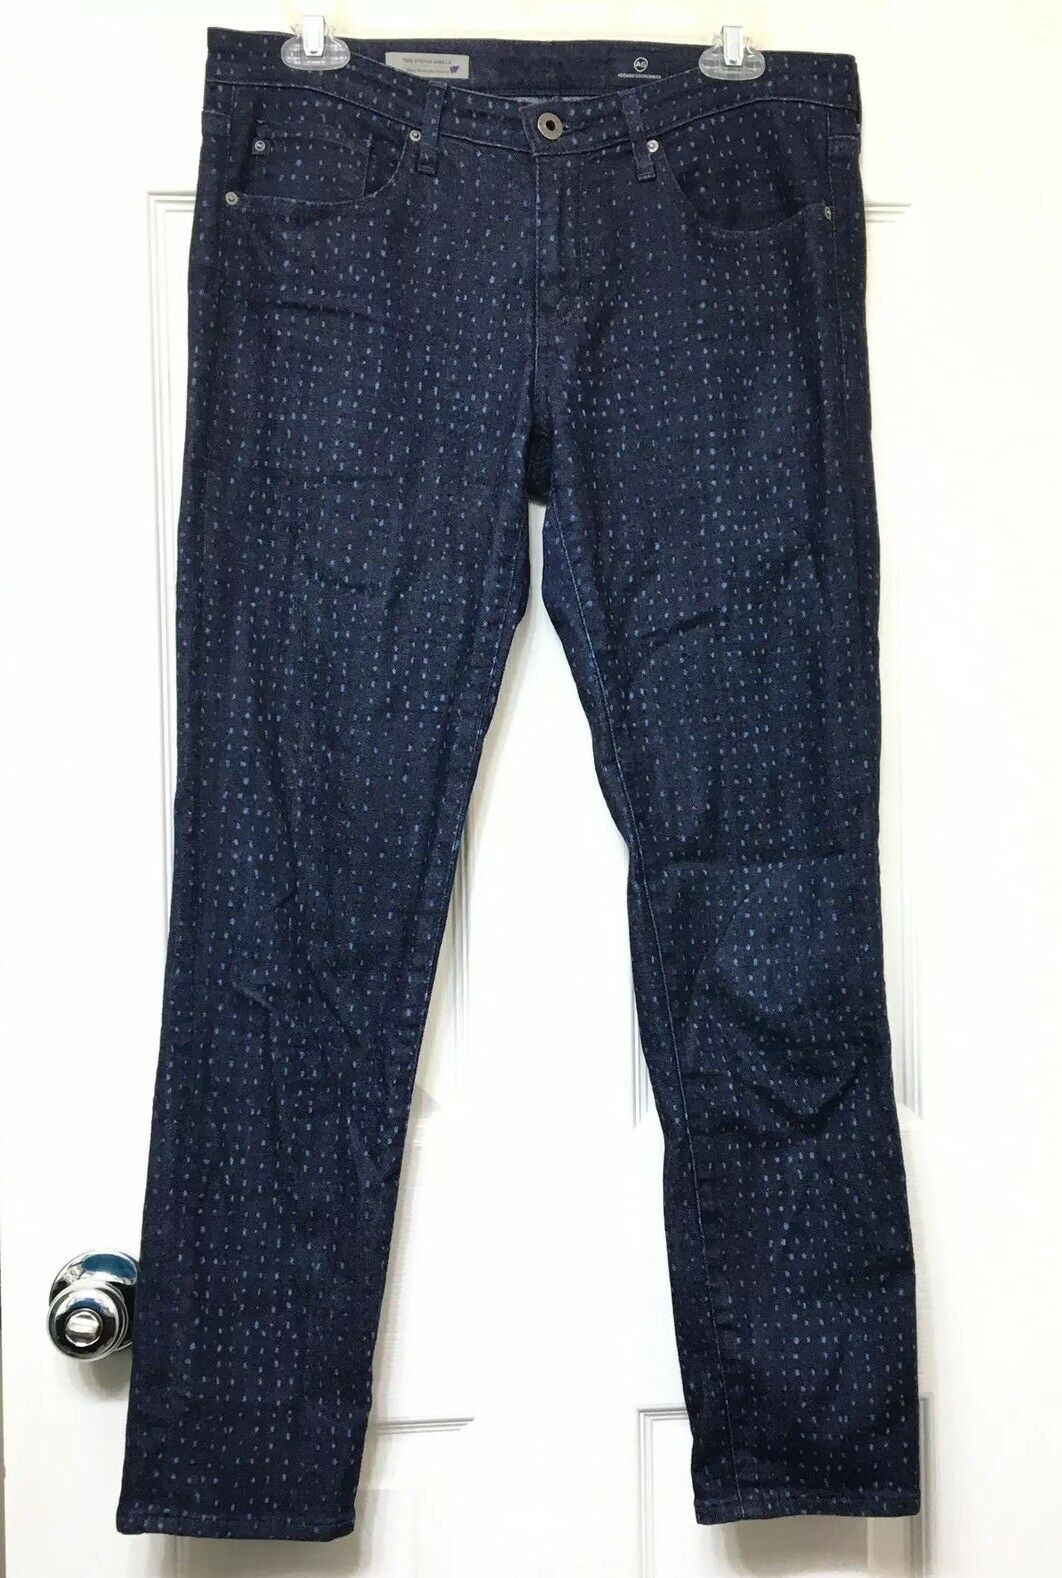 AG Adriano goldschmied Jeans 29R The Stevie Ankle Slim Straight Ankle Dark Wash